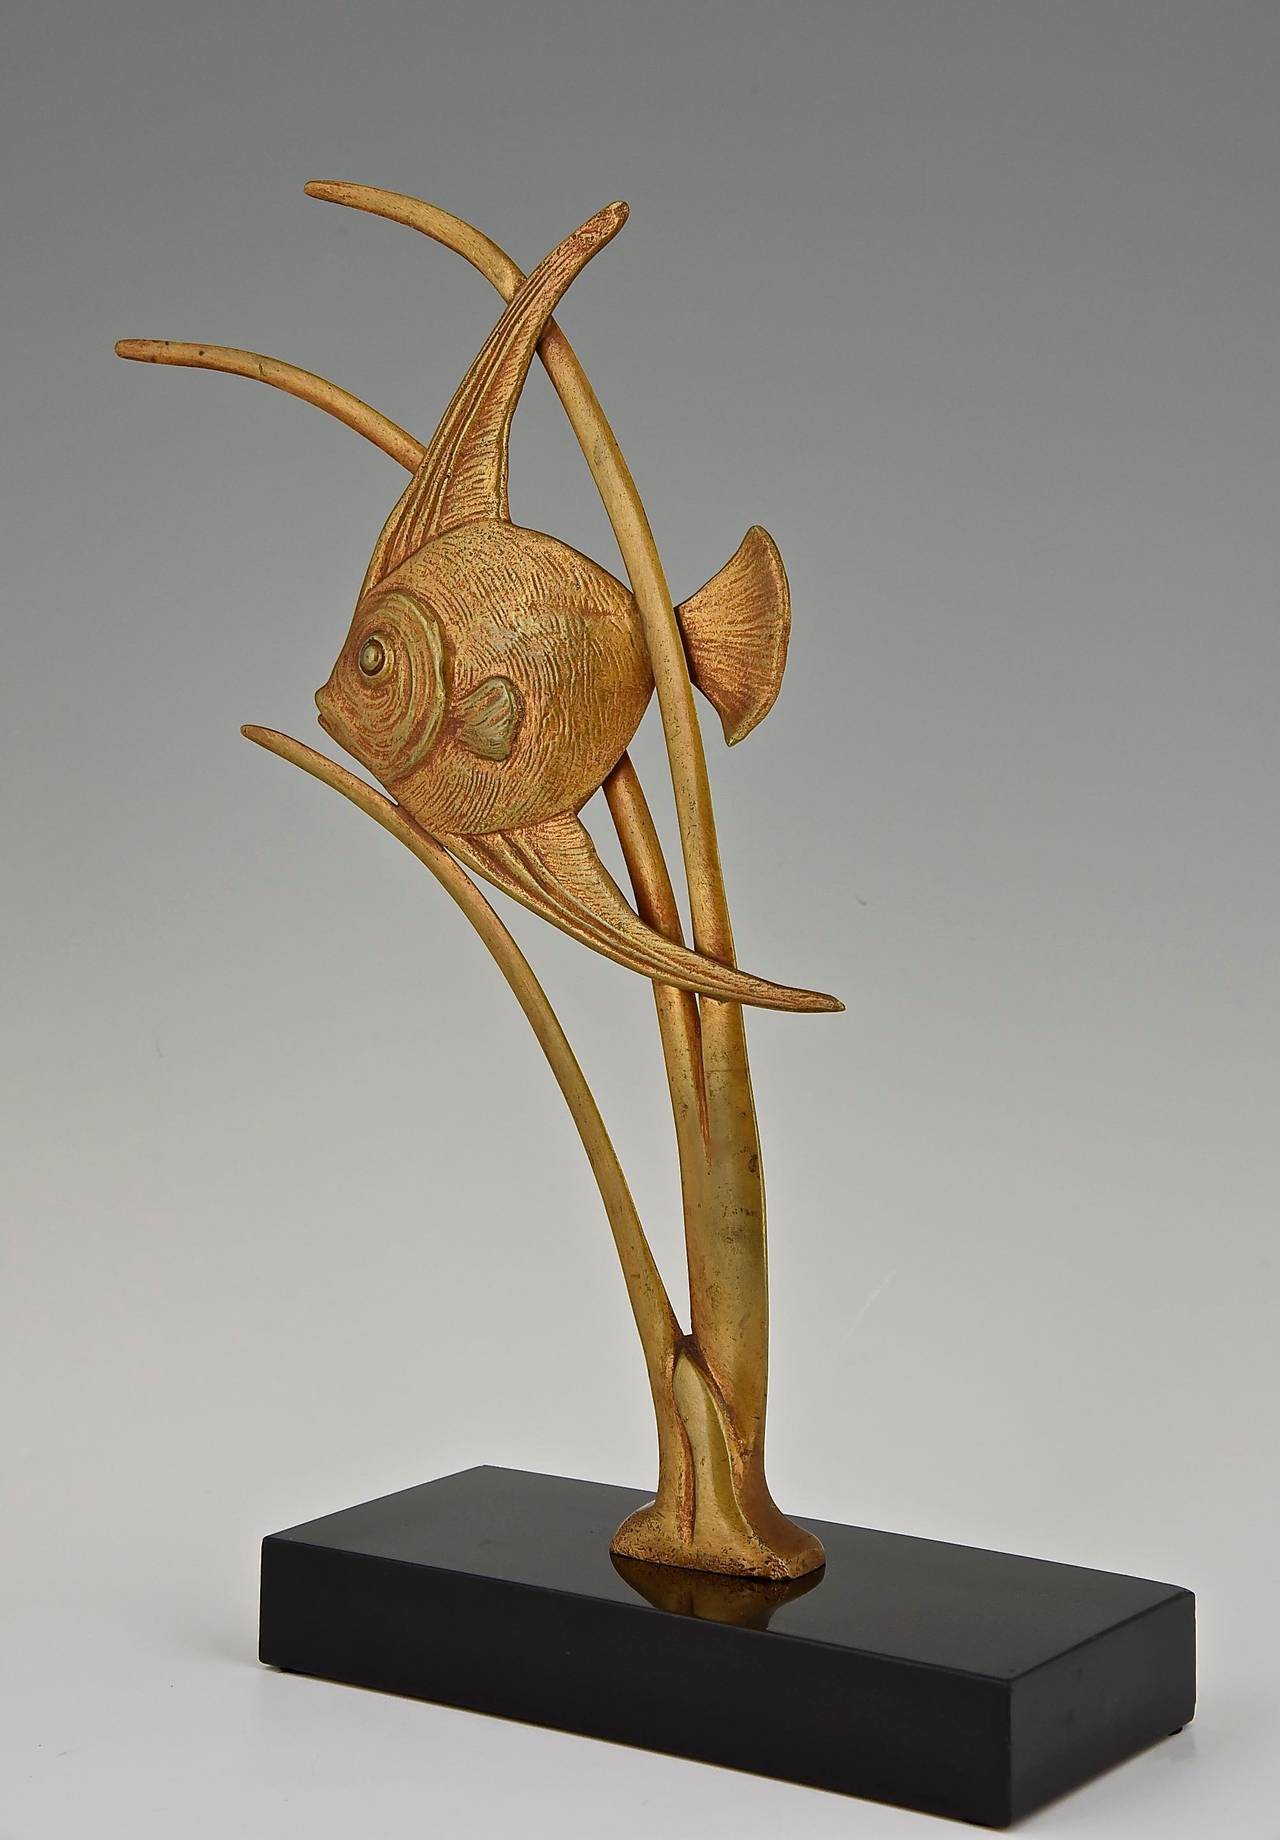 Art Deco Bronze Sculpture of a Fish by De Roche 1930 France In Good Condition For Sale In Antwerp, BE